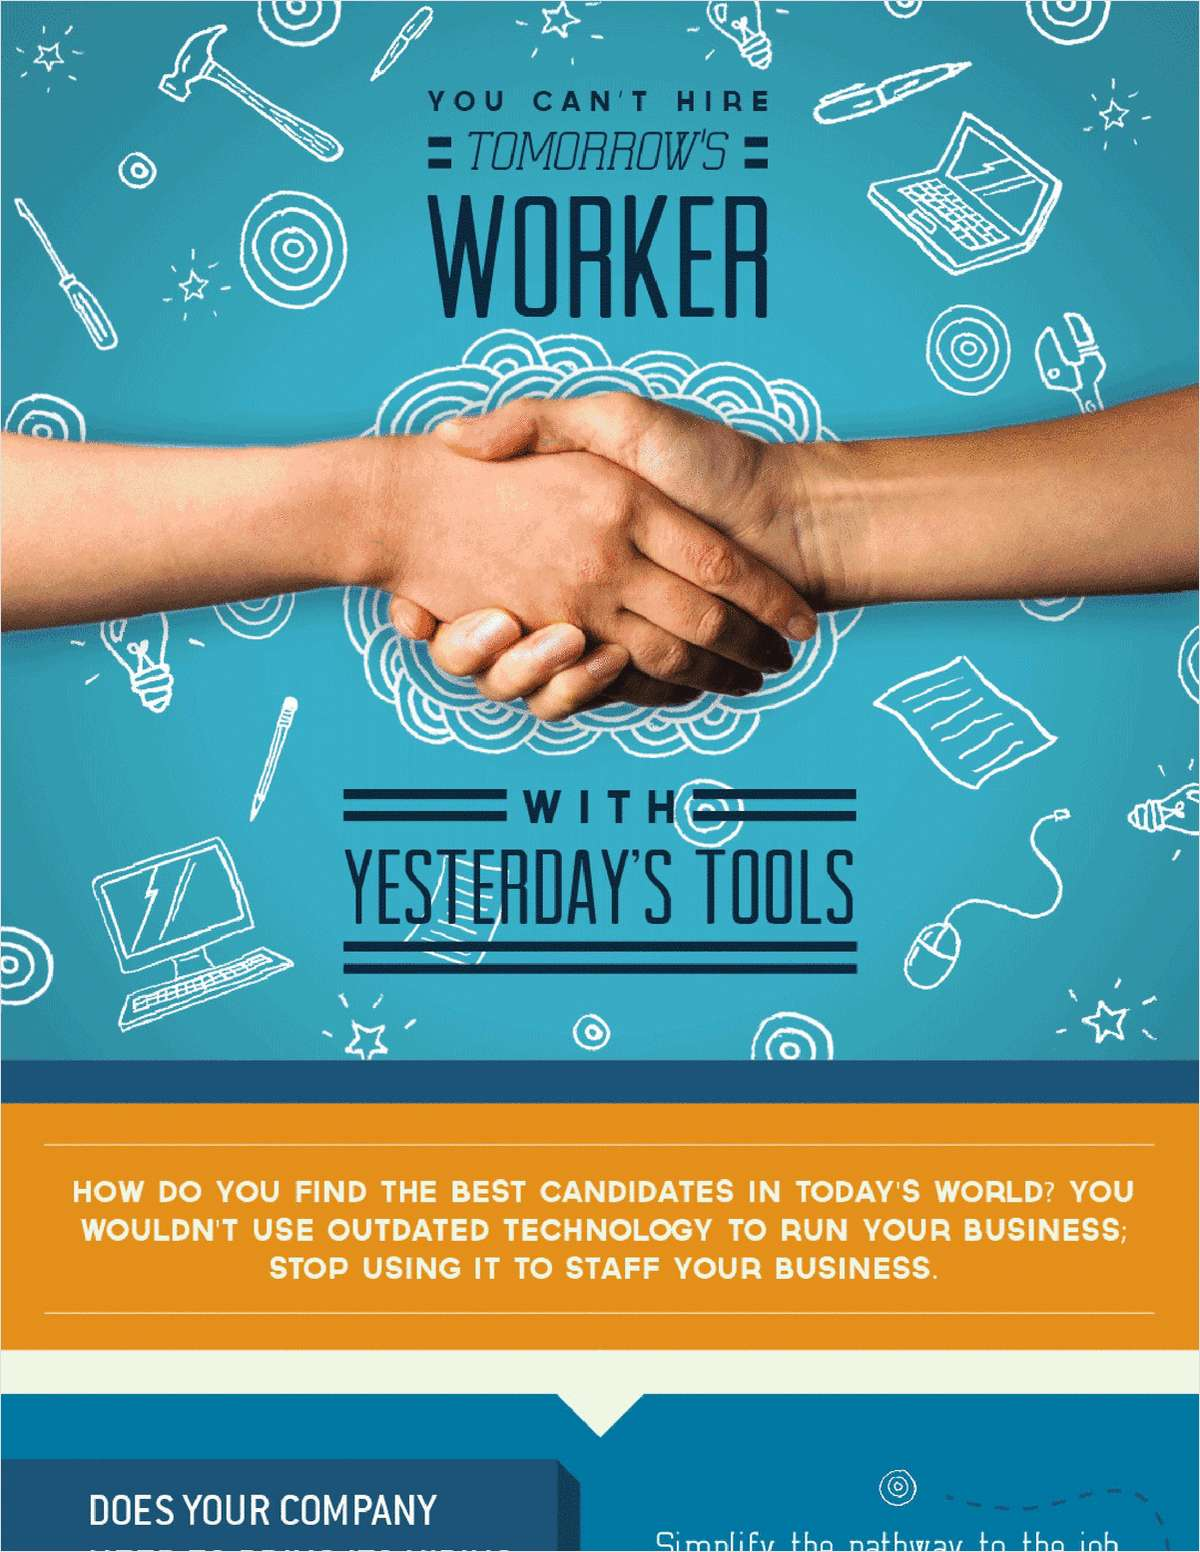 You Can't Hire Tomorrow's Workers with Yesterday's Tools